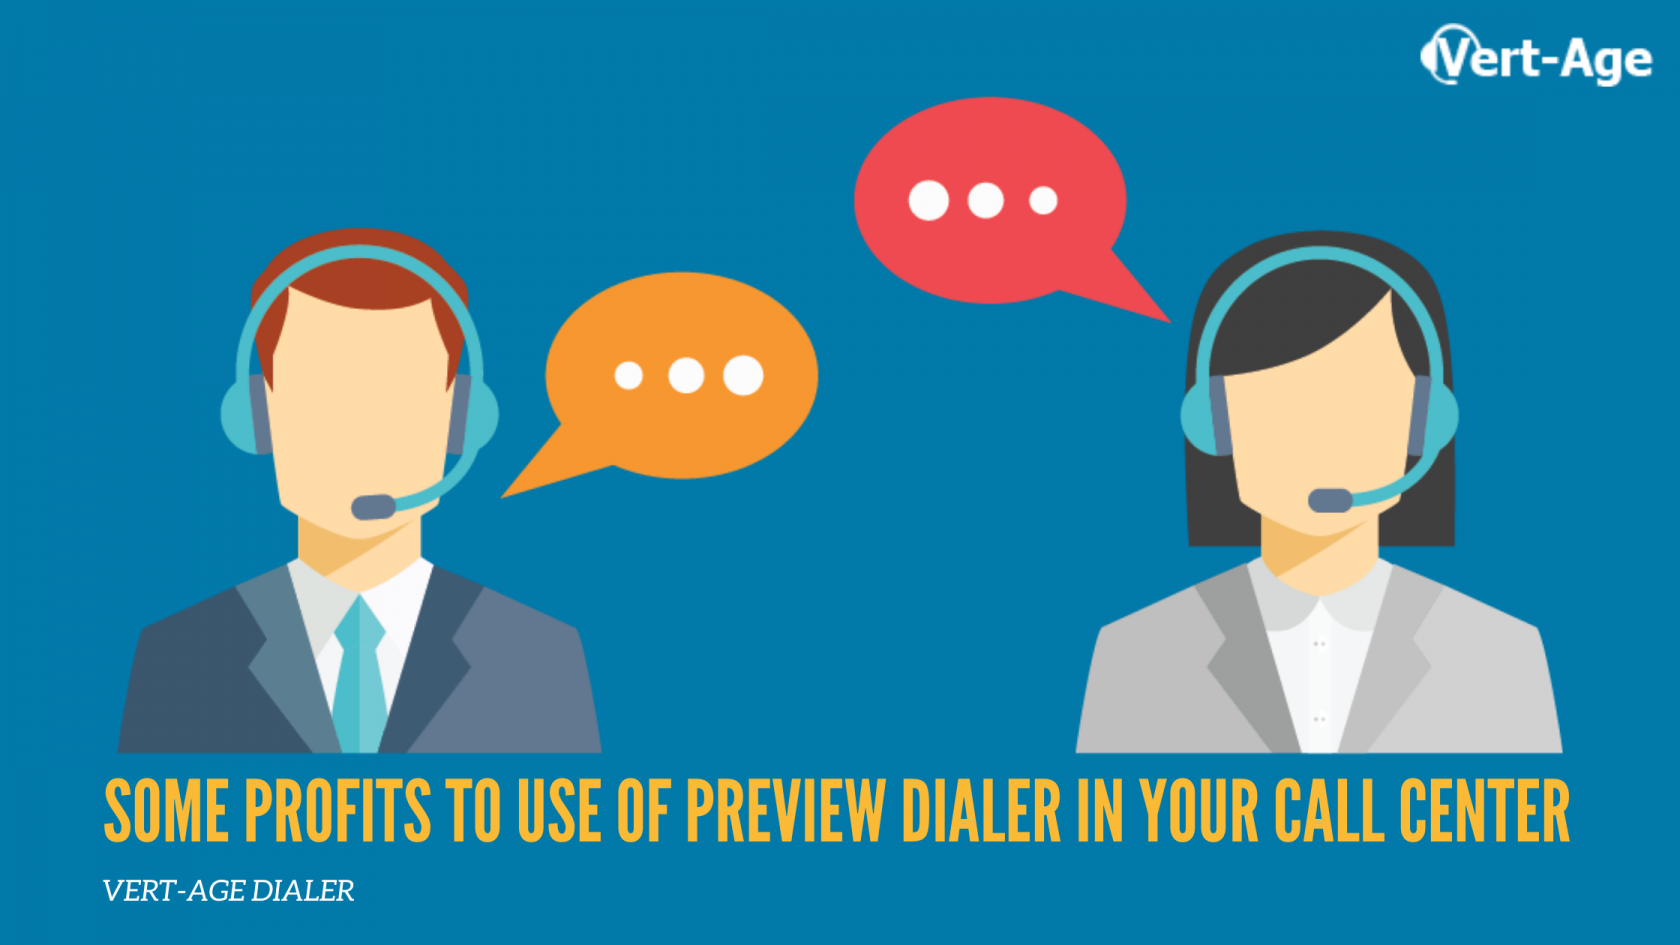 profits to use of preview dialer in your call center